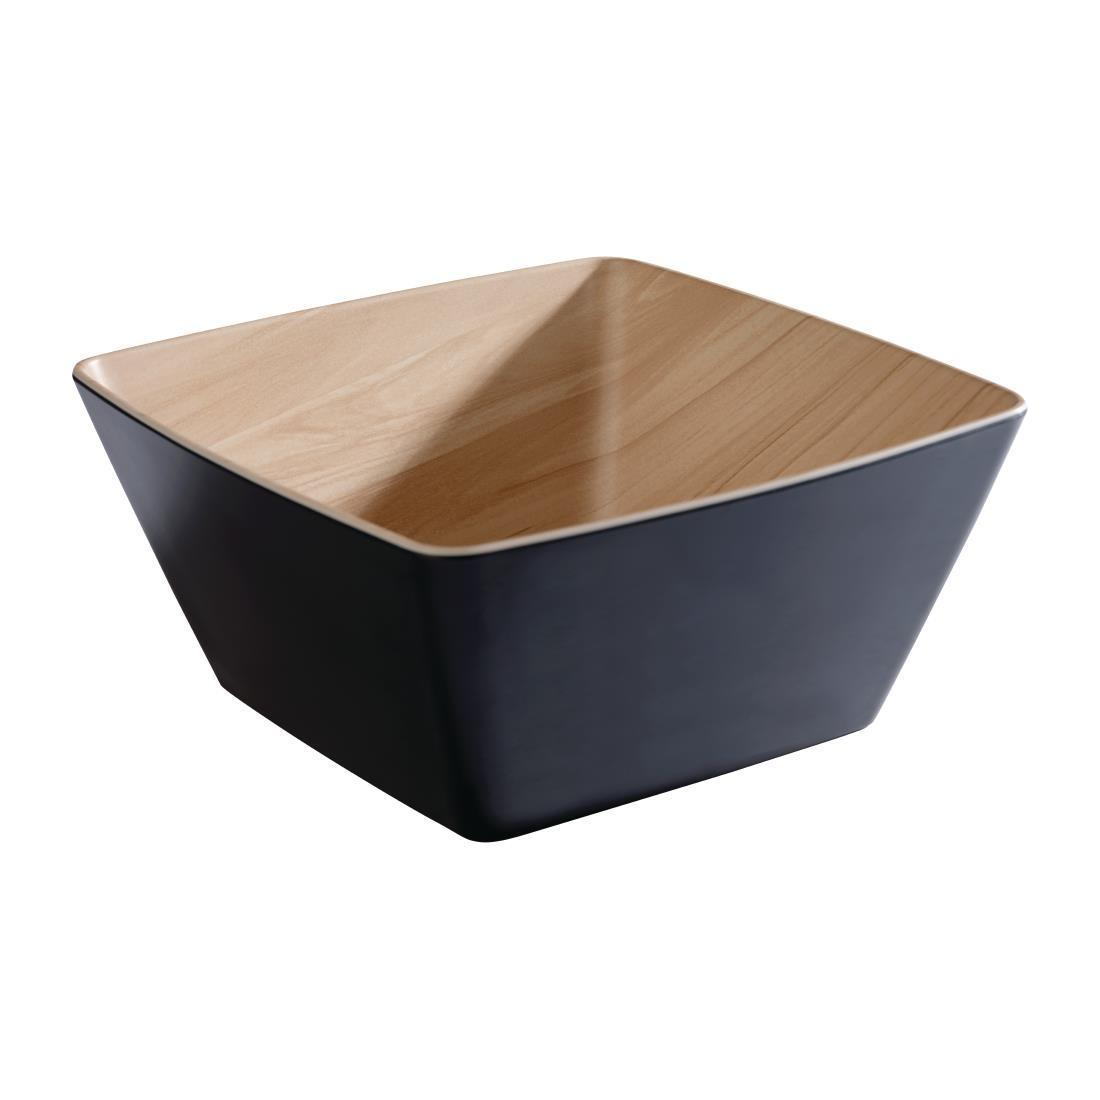 APS Frida Deep Bowl 250mm Black - Each - DW053